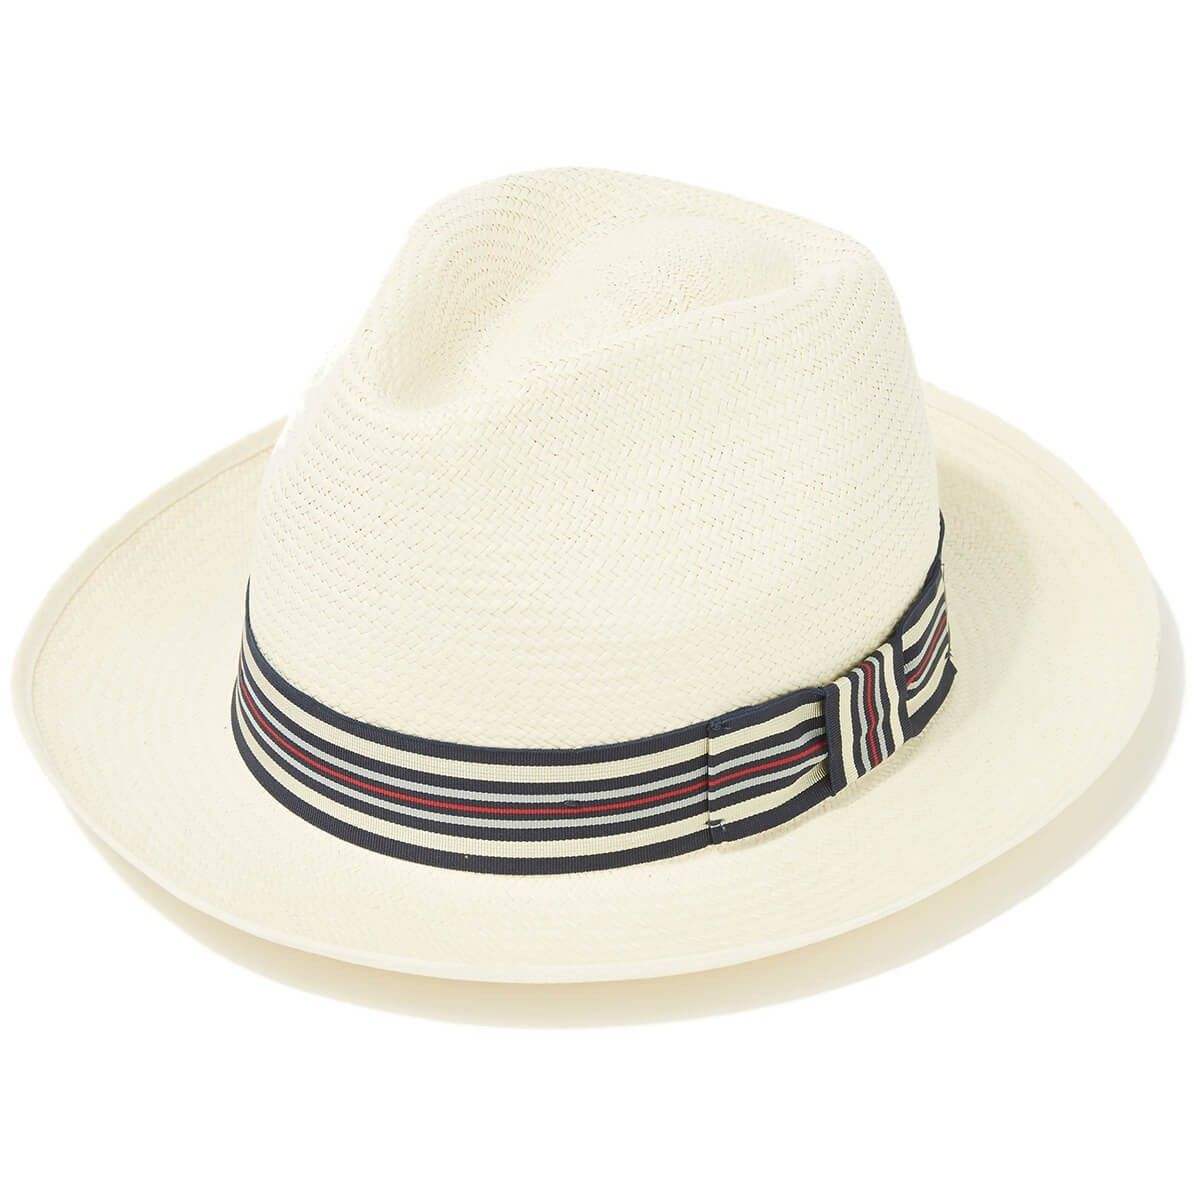 Christys Regimental Panama Hat